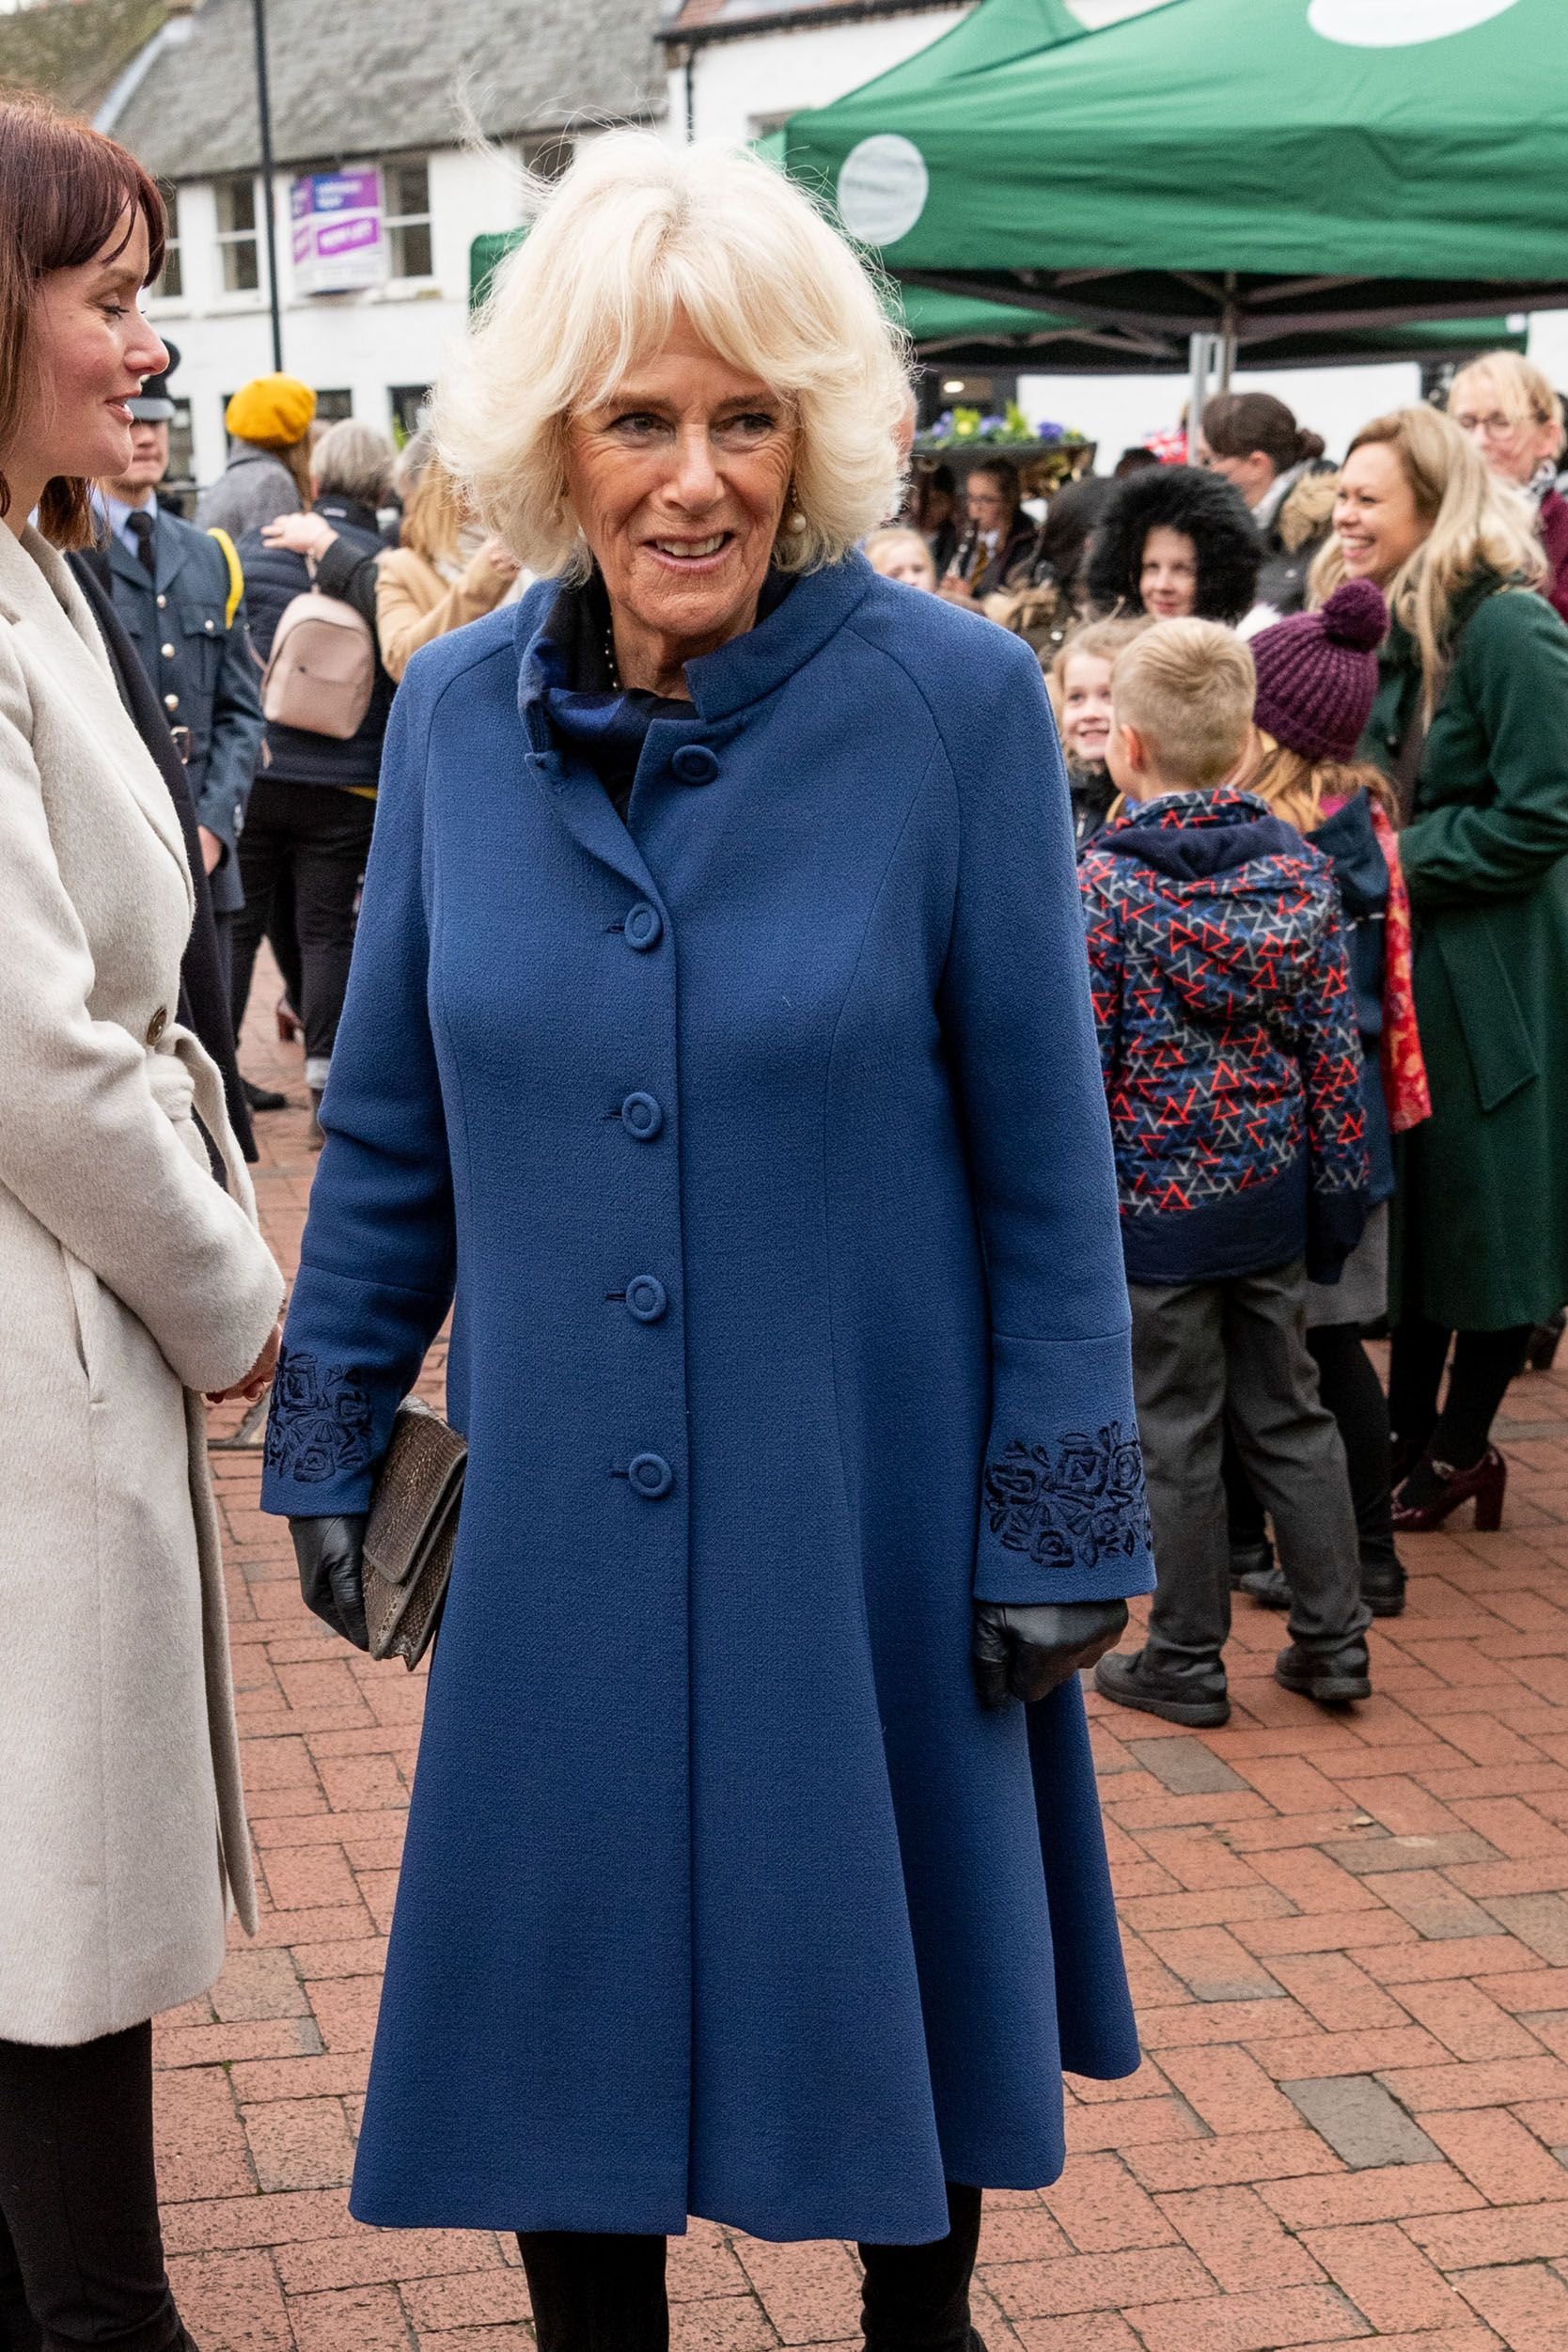 The Prince Of Wales & Duchess Of Cornwall Visit Ely Market